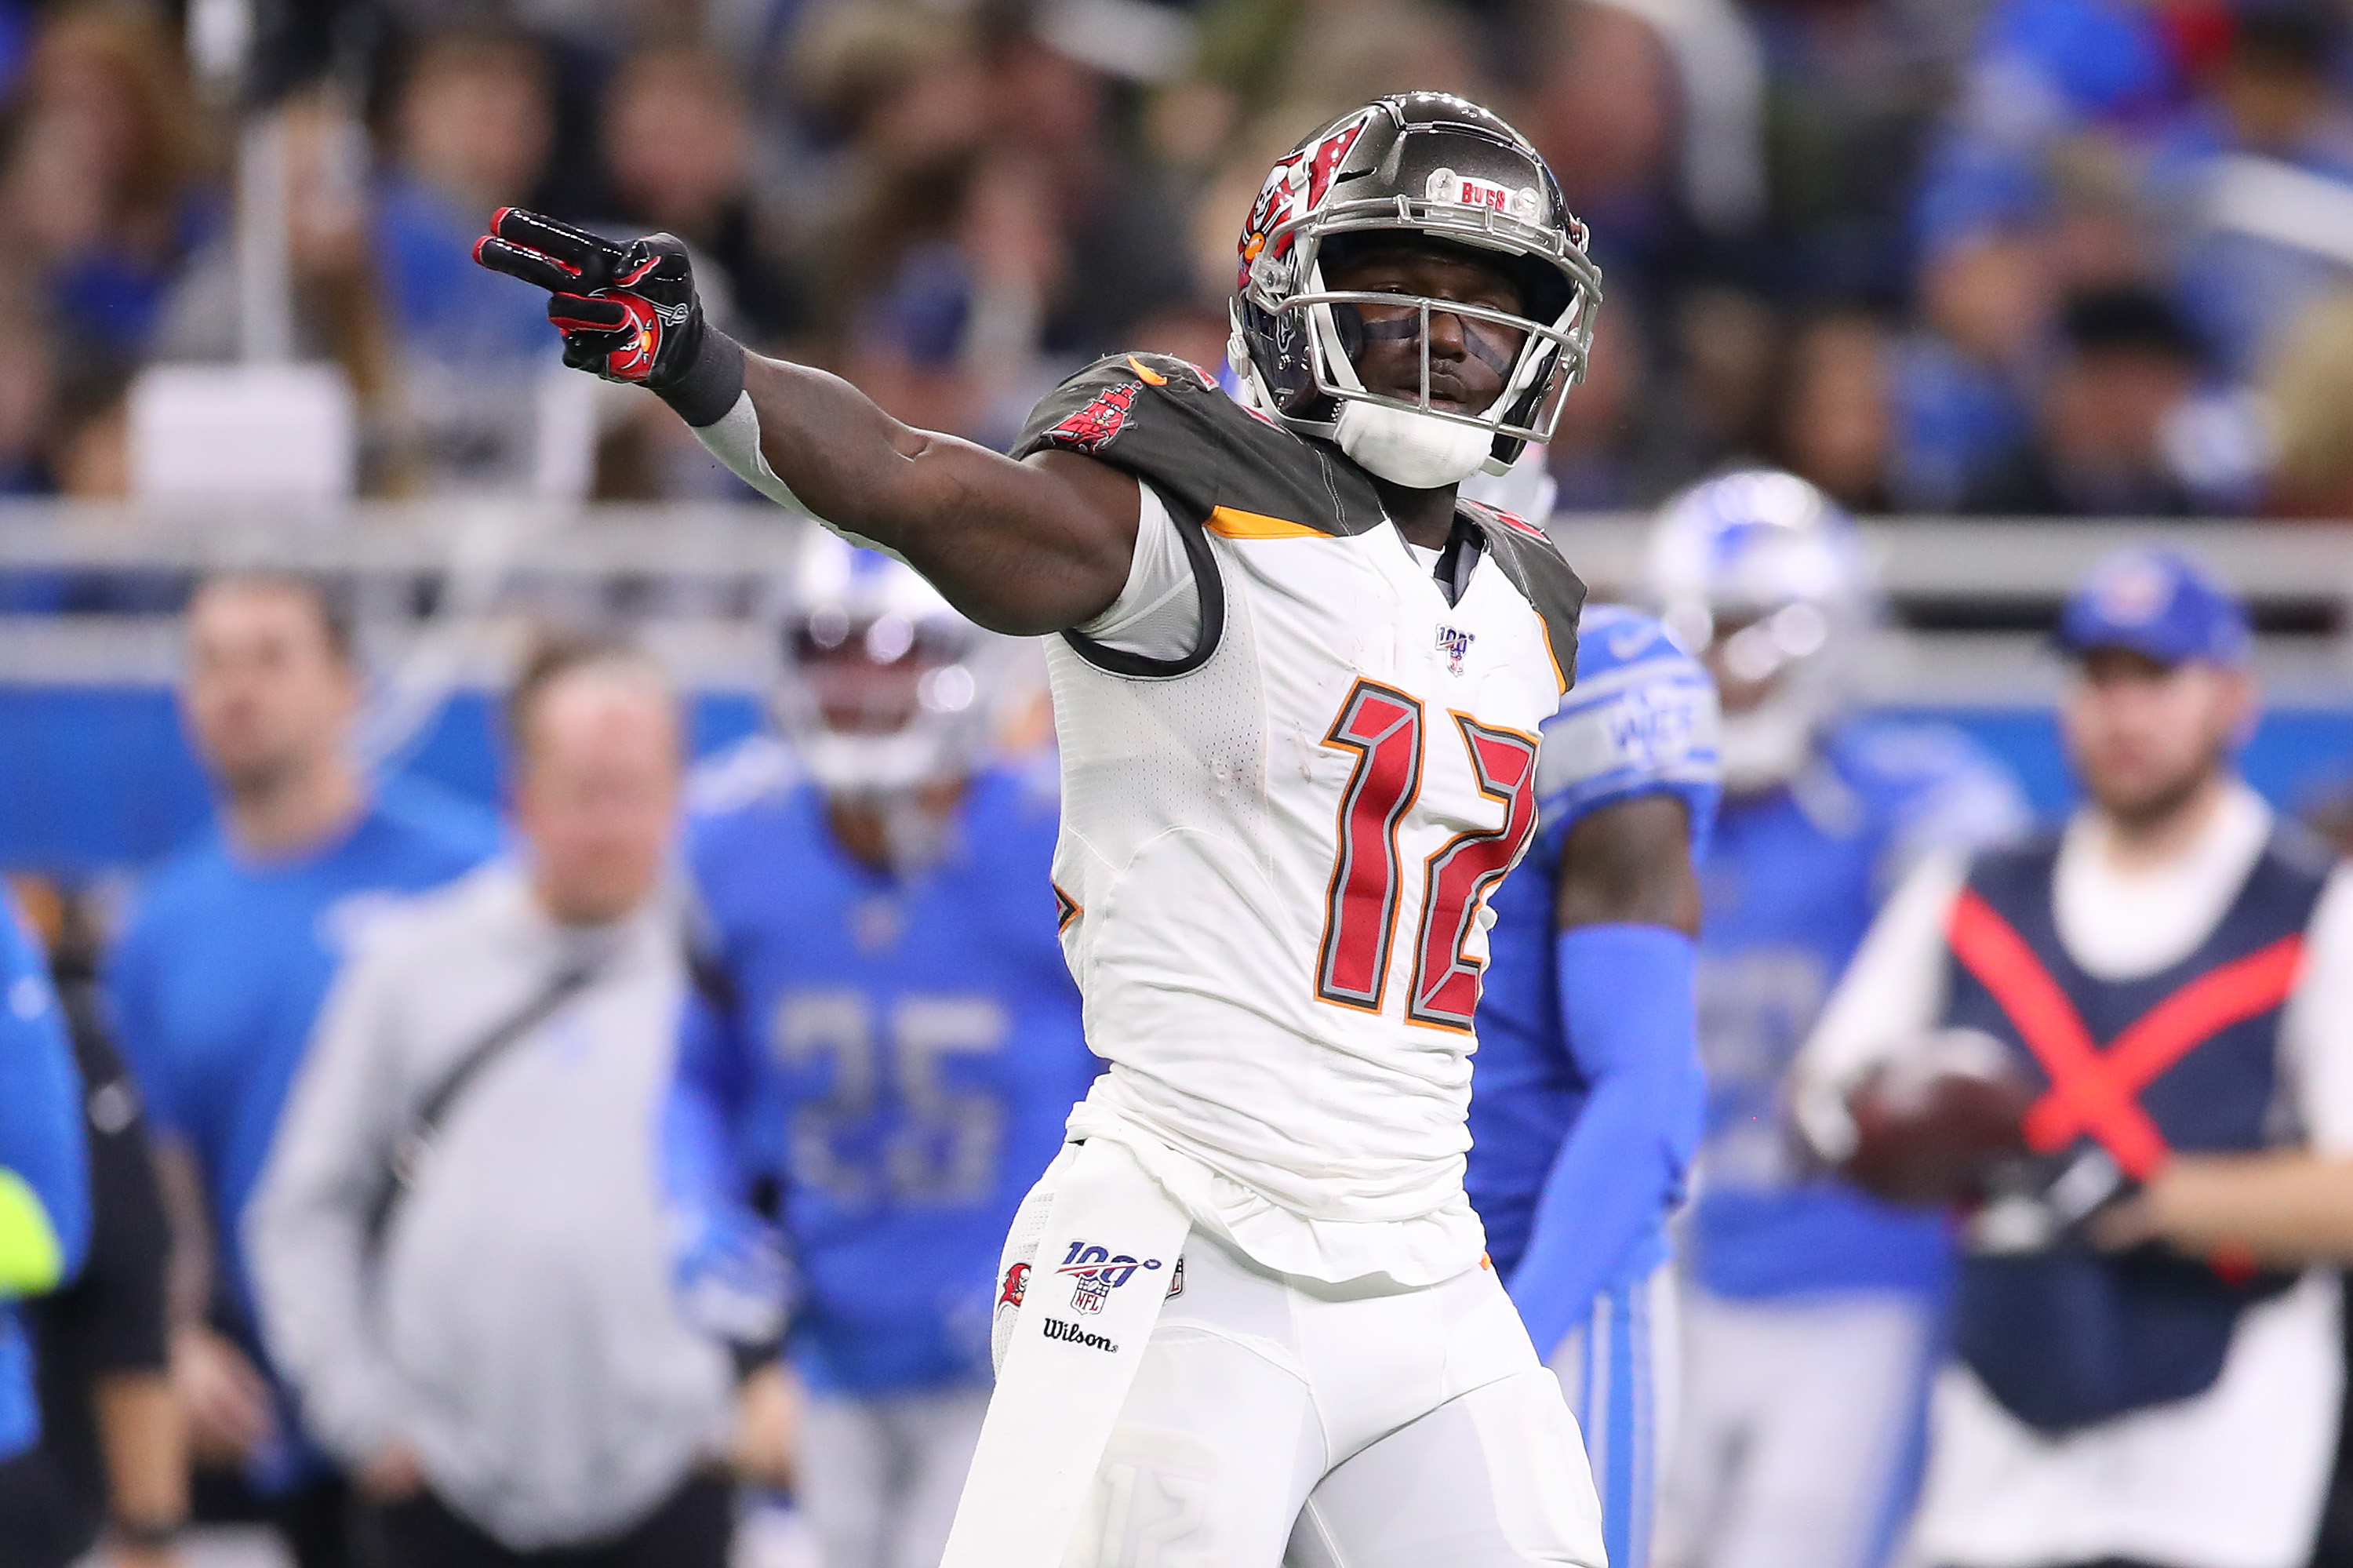 Chris Godwin of the Tampa Bay Buccaneers signals a first down after a first half catch against the Detroit Lions at Ford Field on December 15, 2019 in Detroit, Michigan.